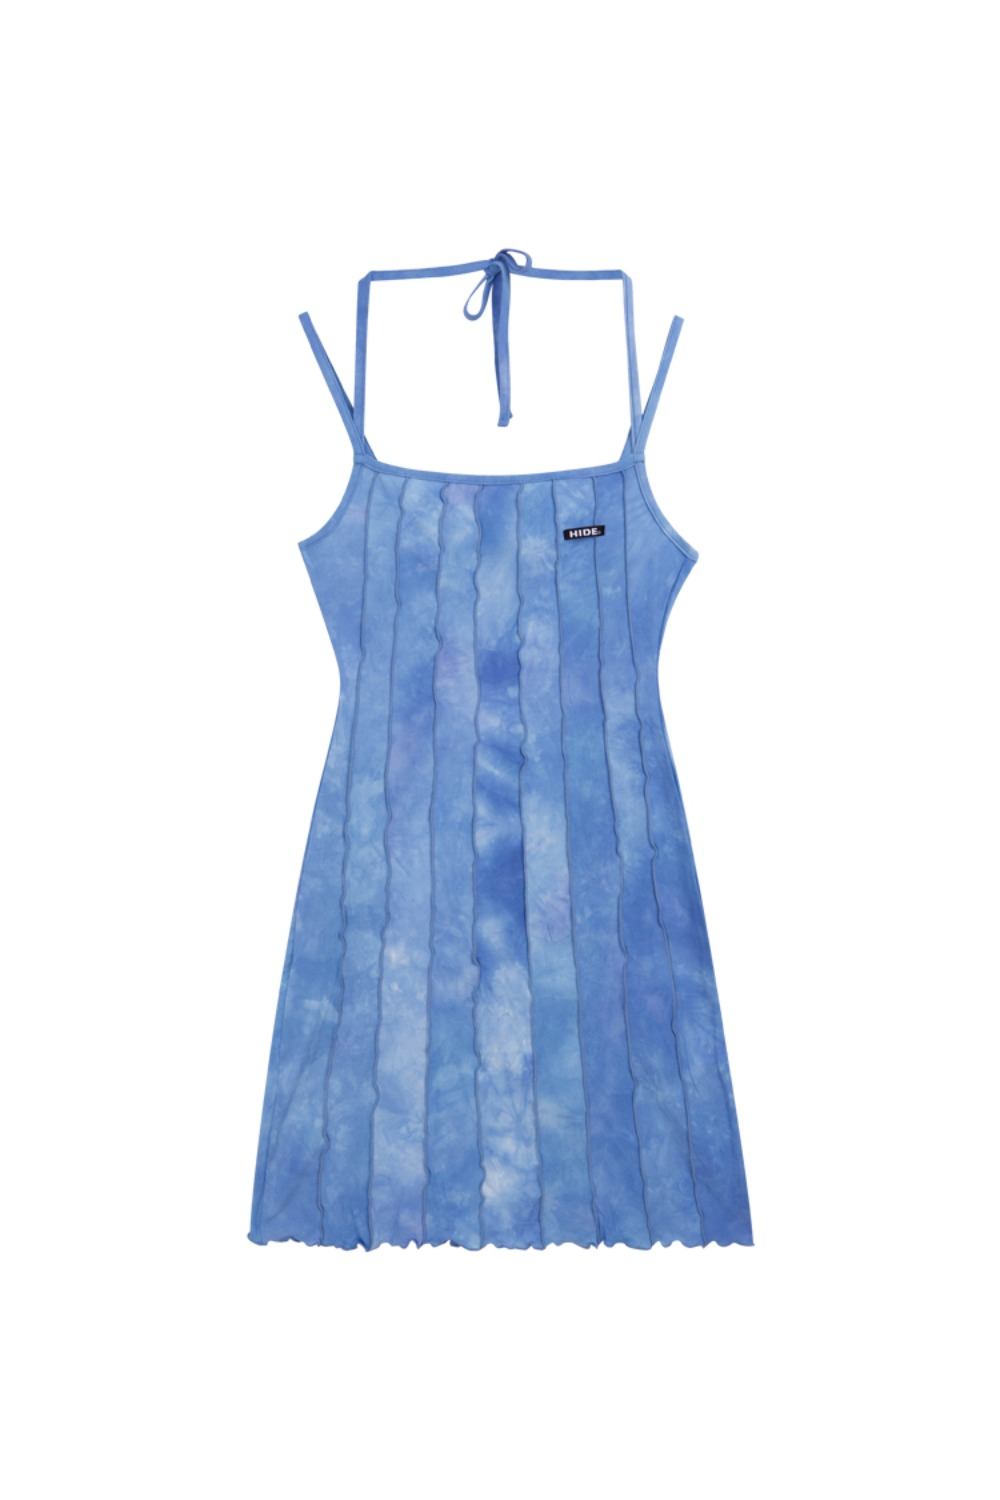 HIDE Lettuce Edge Dress SKY BLUE